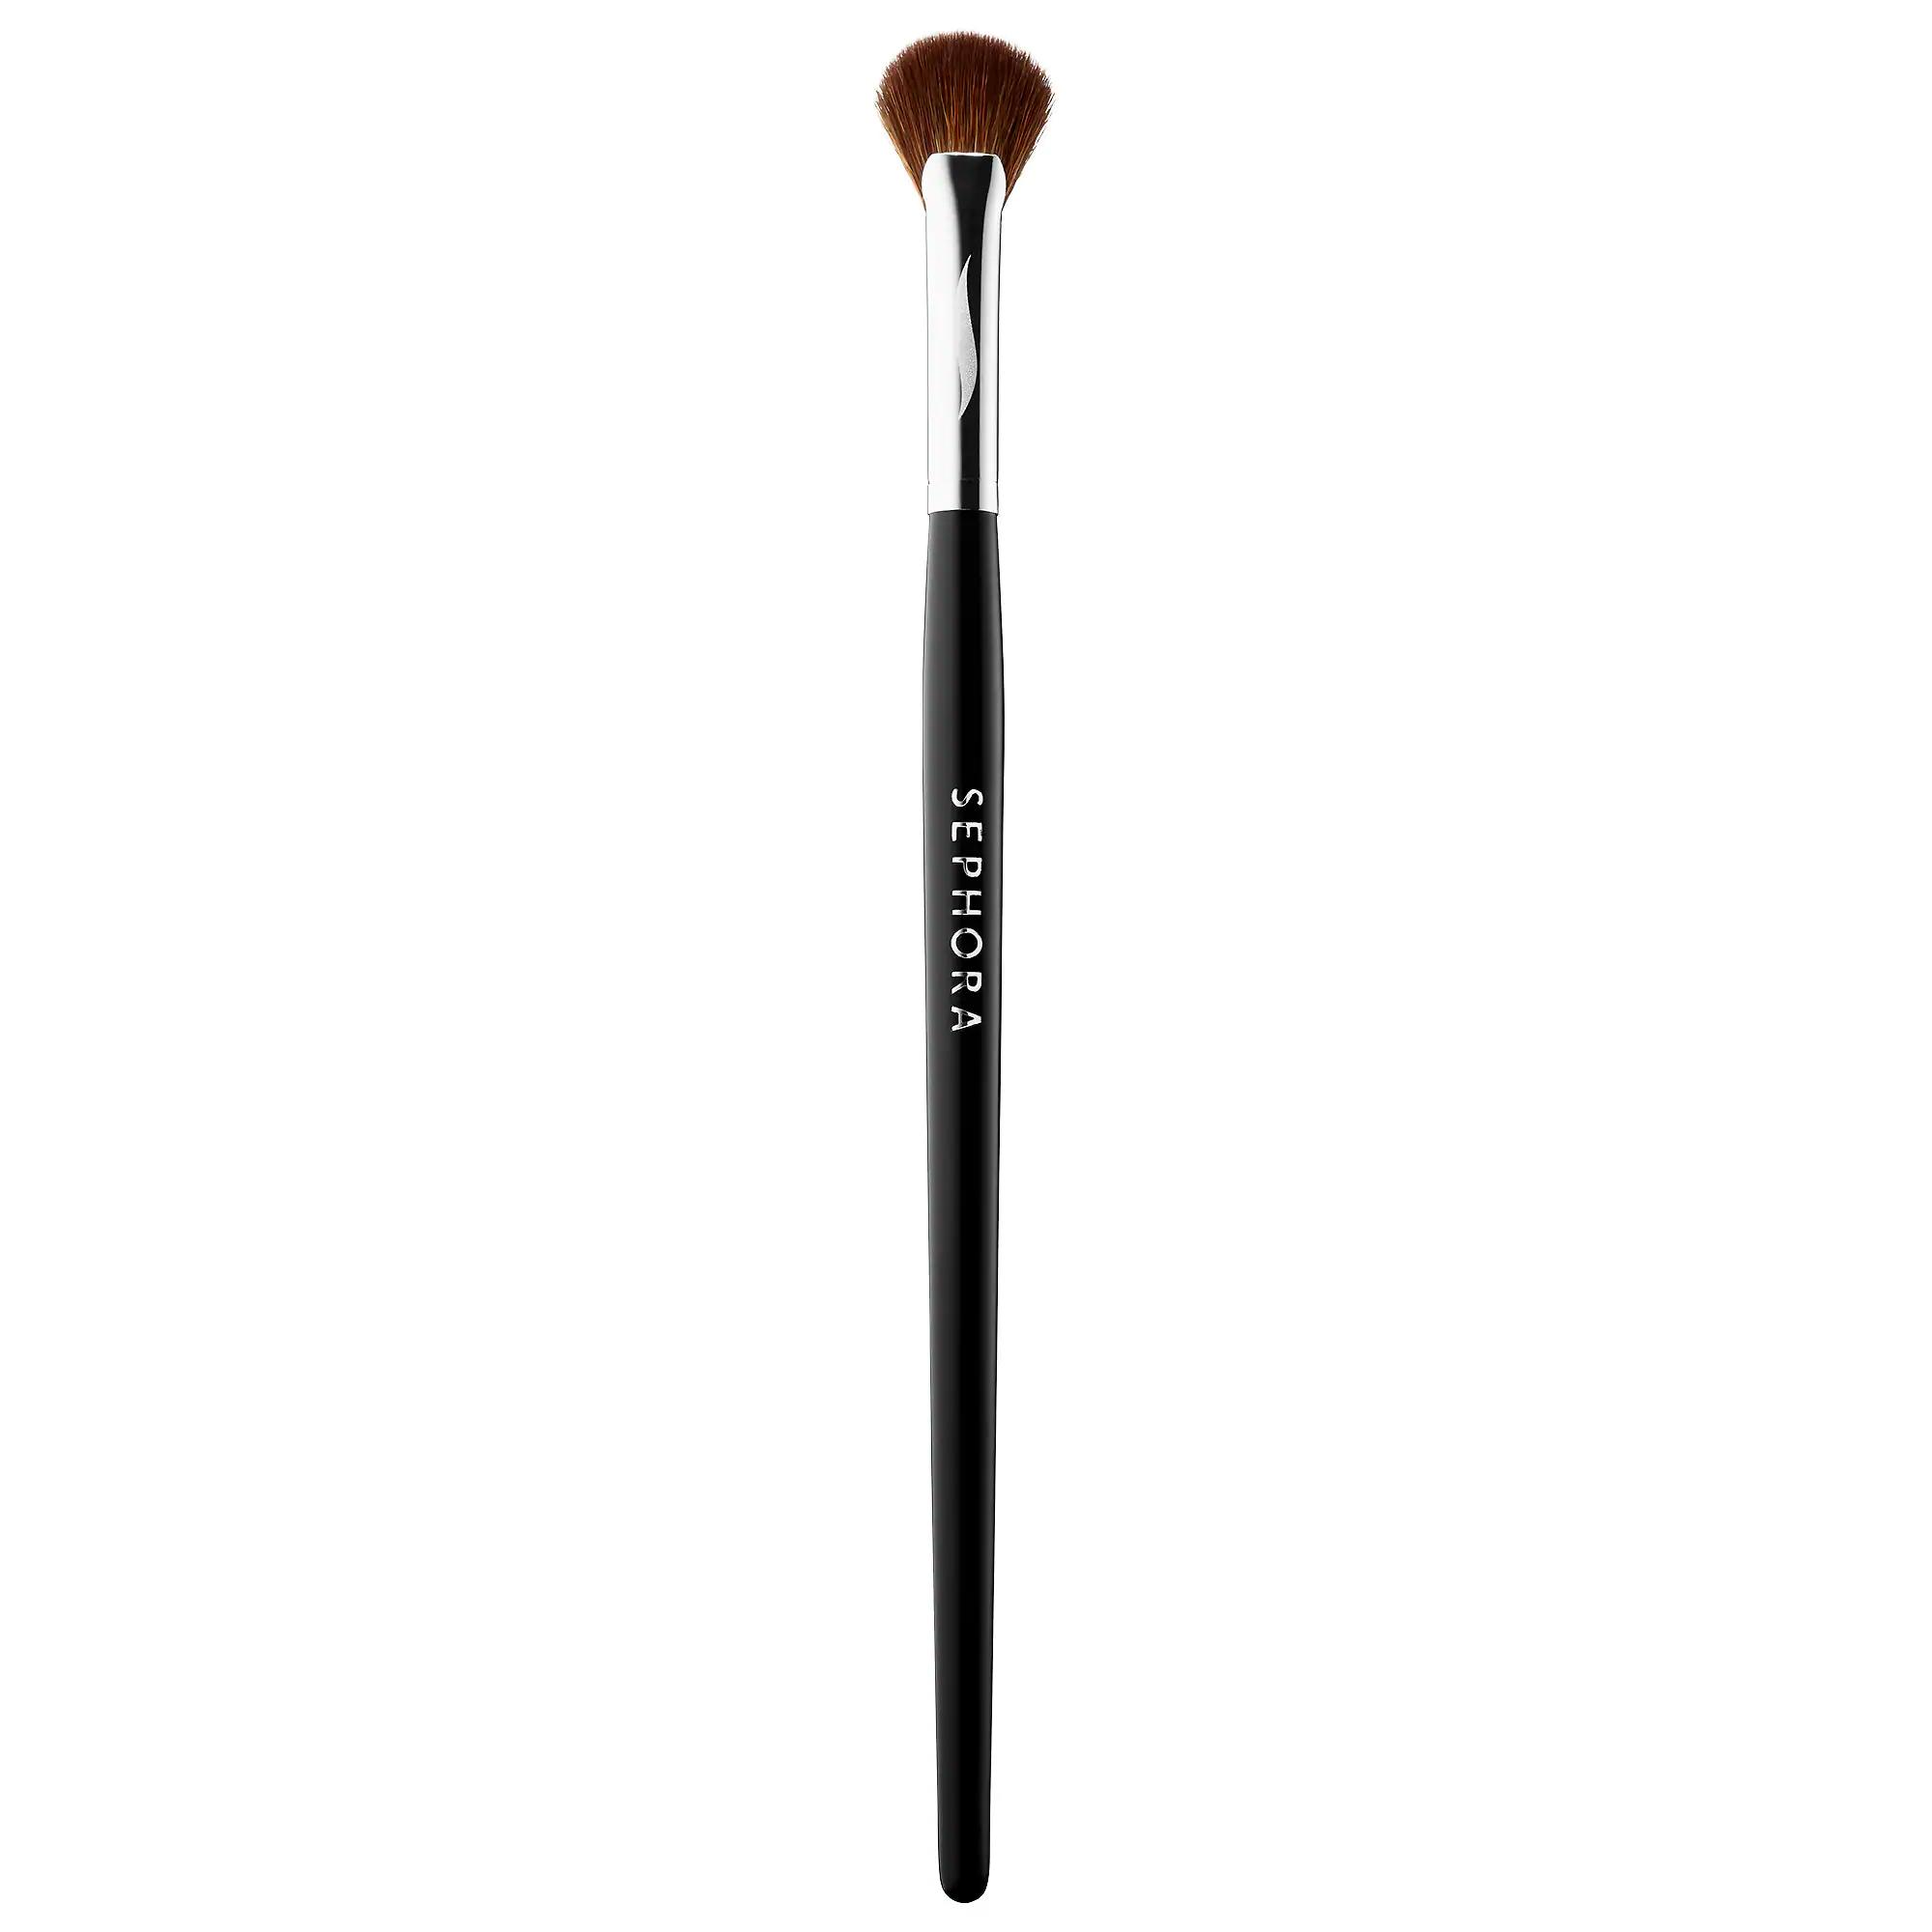 Sephora PRO Fan Shadow Brush #25